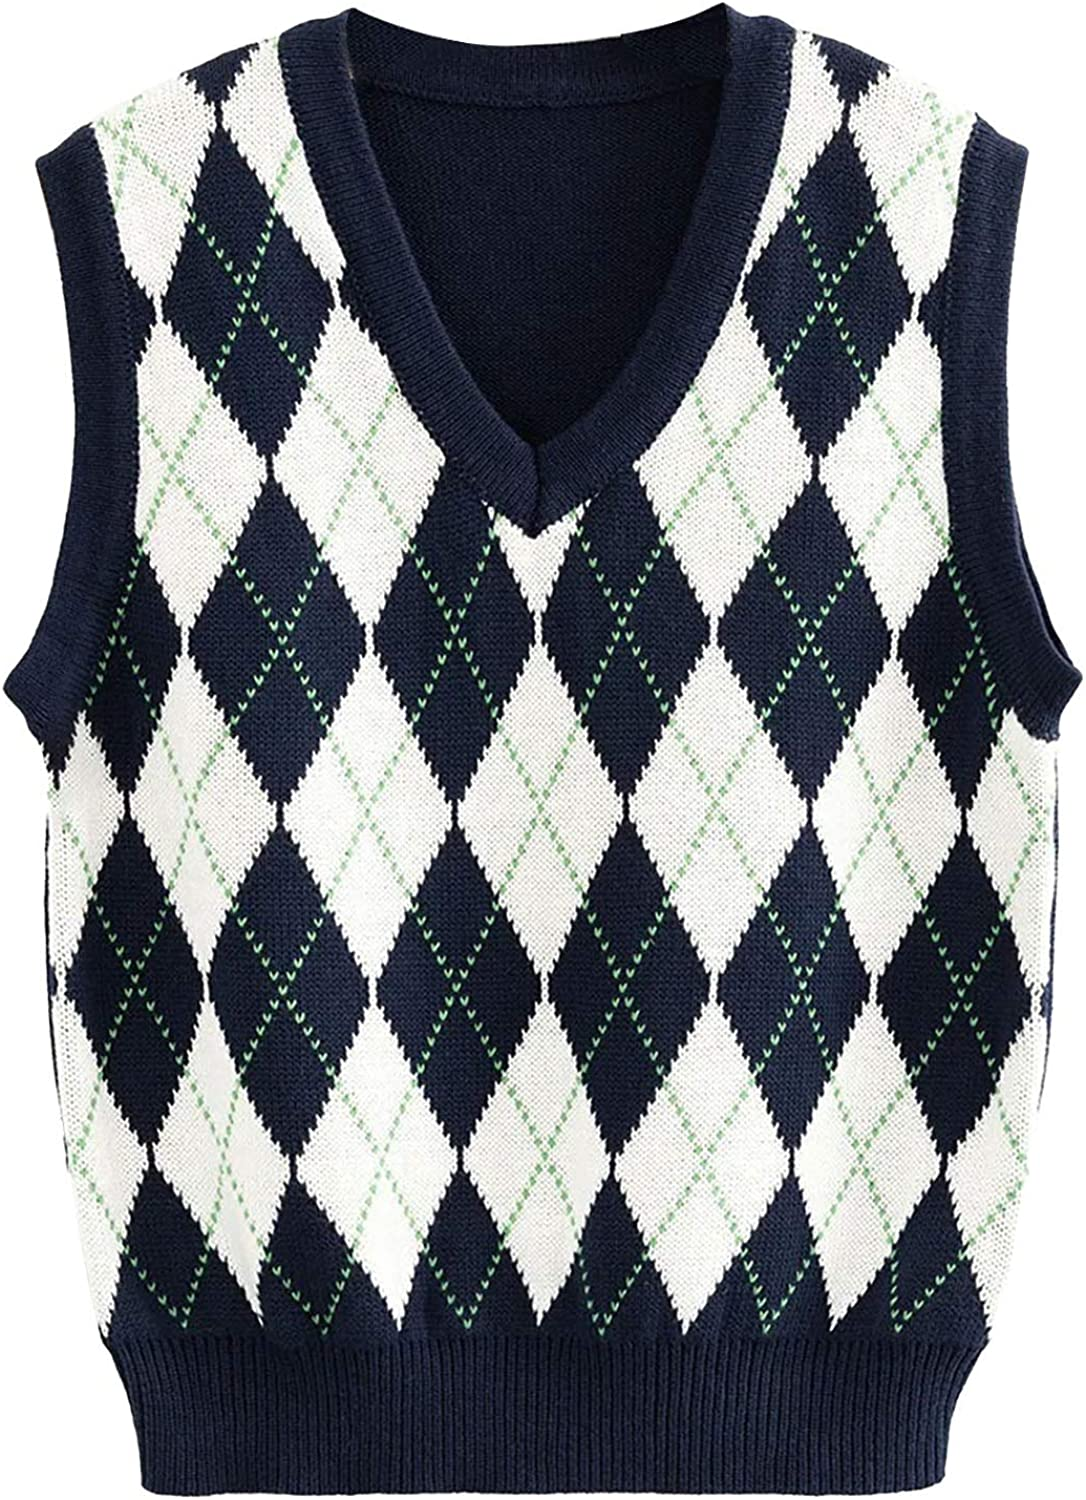 Clothes for Women,Women's Sweater New Women's Round Neck Sweater Top Sleeveless Vest Gift